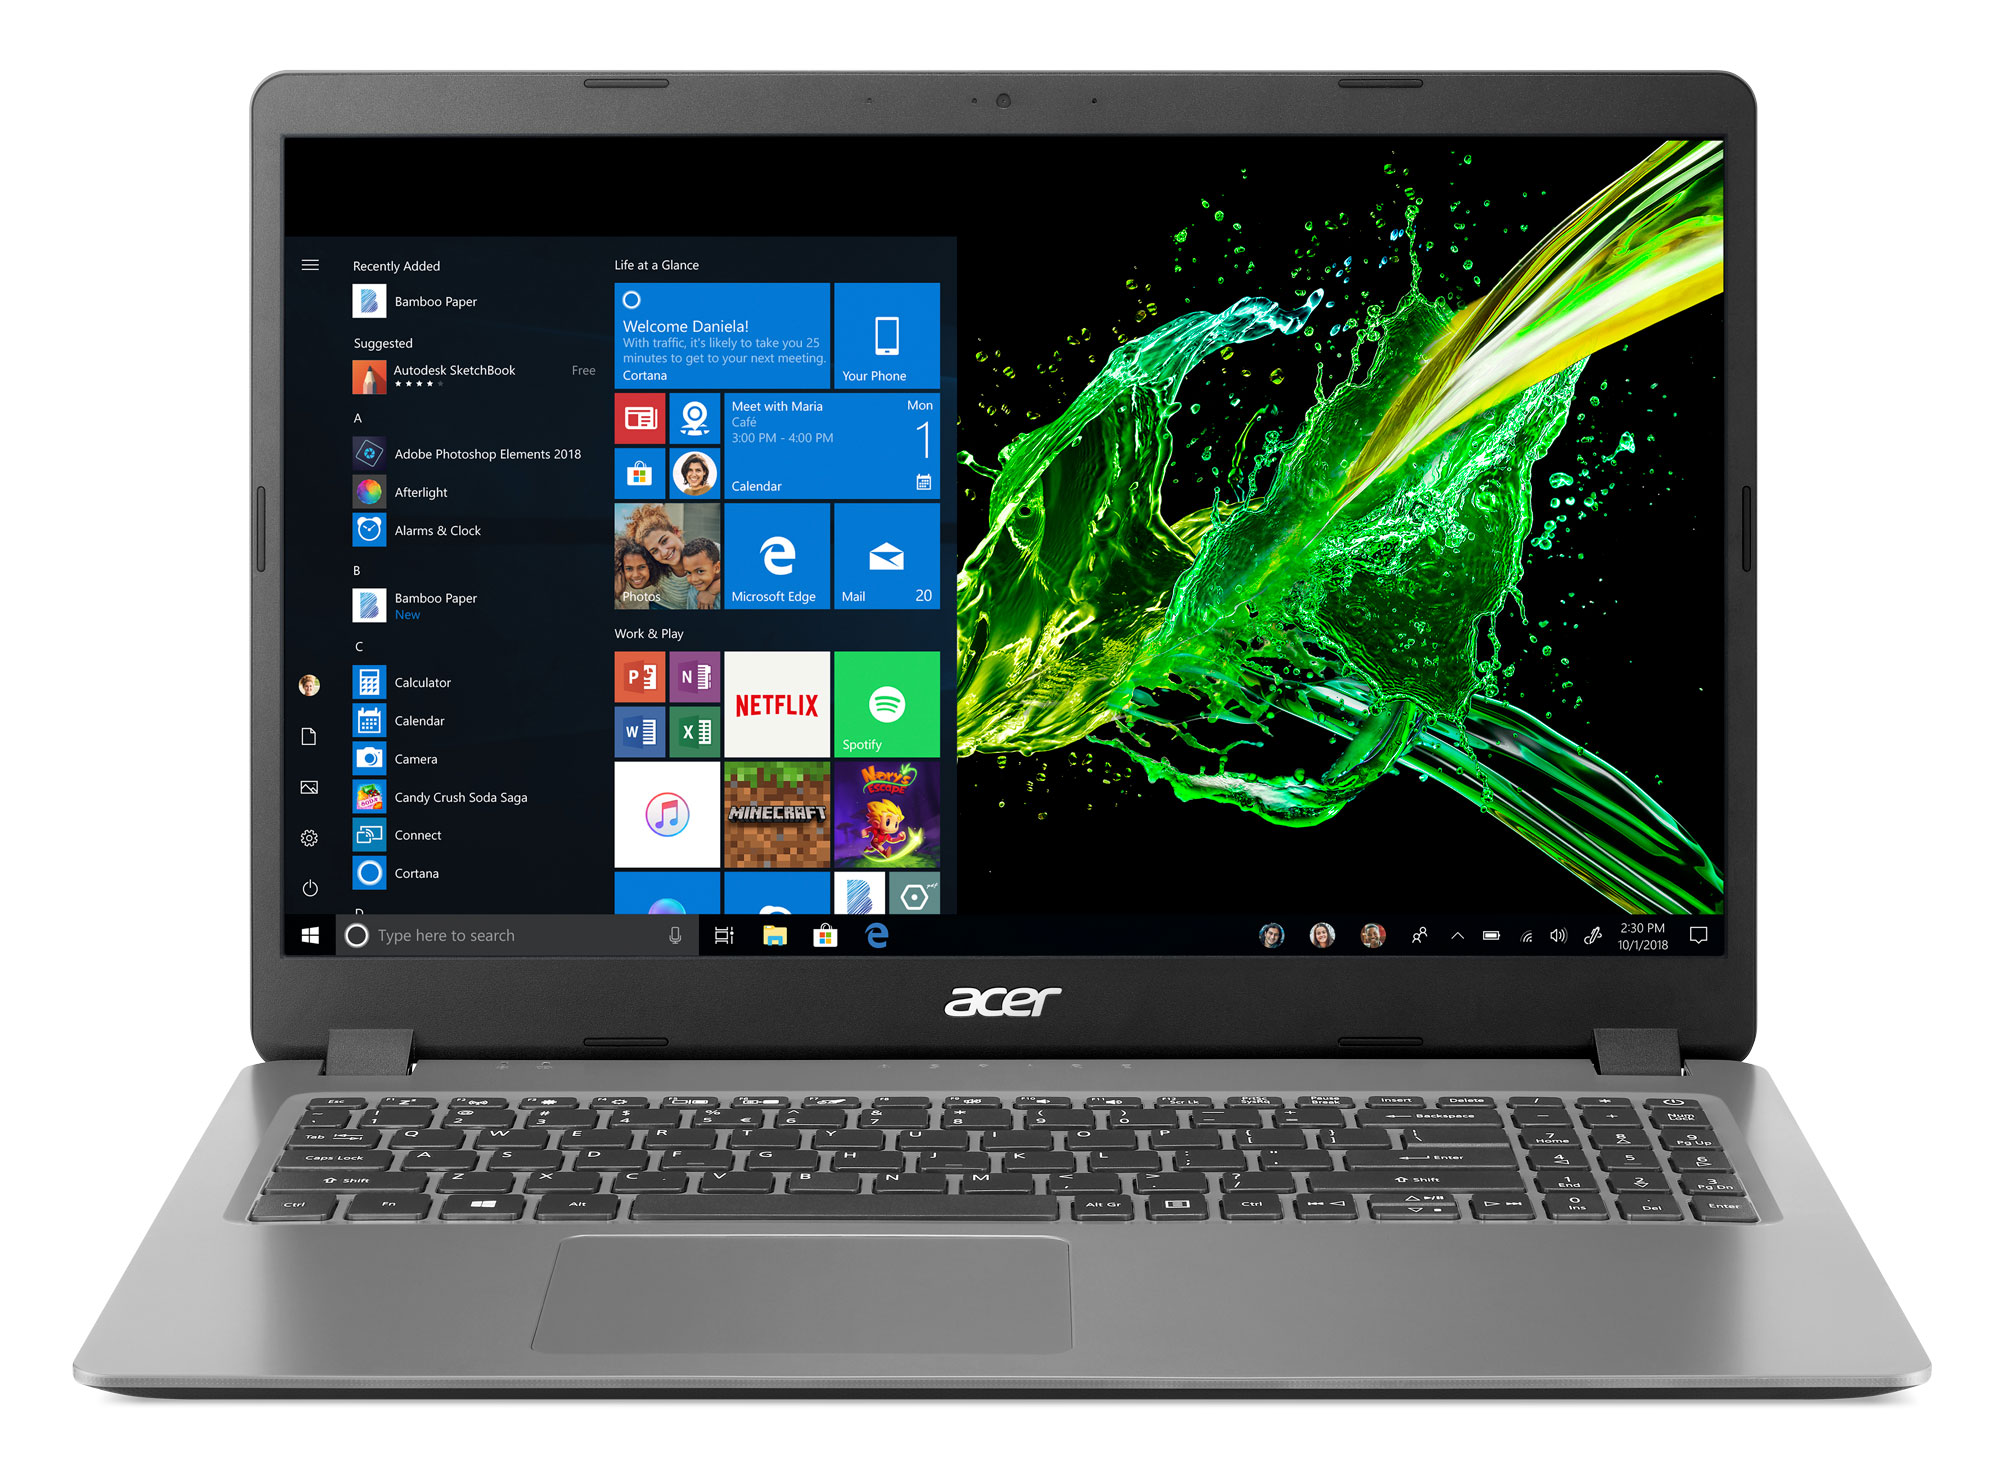 Acer Aspire 3 Laptop for 9: 15.6″ FHD, i5-1035G1, 8GB RAM, 256GB SSD